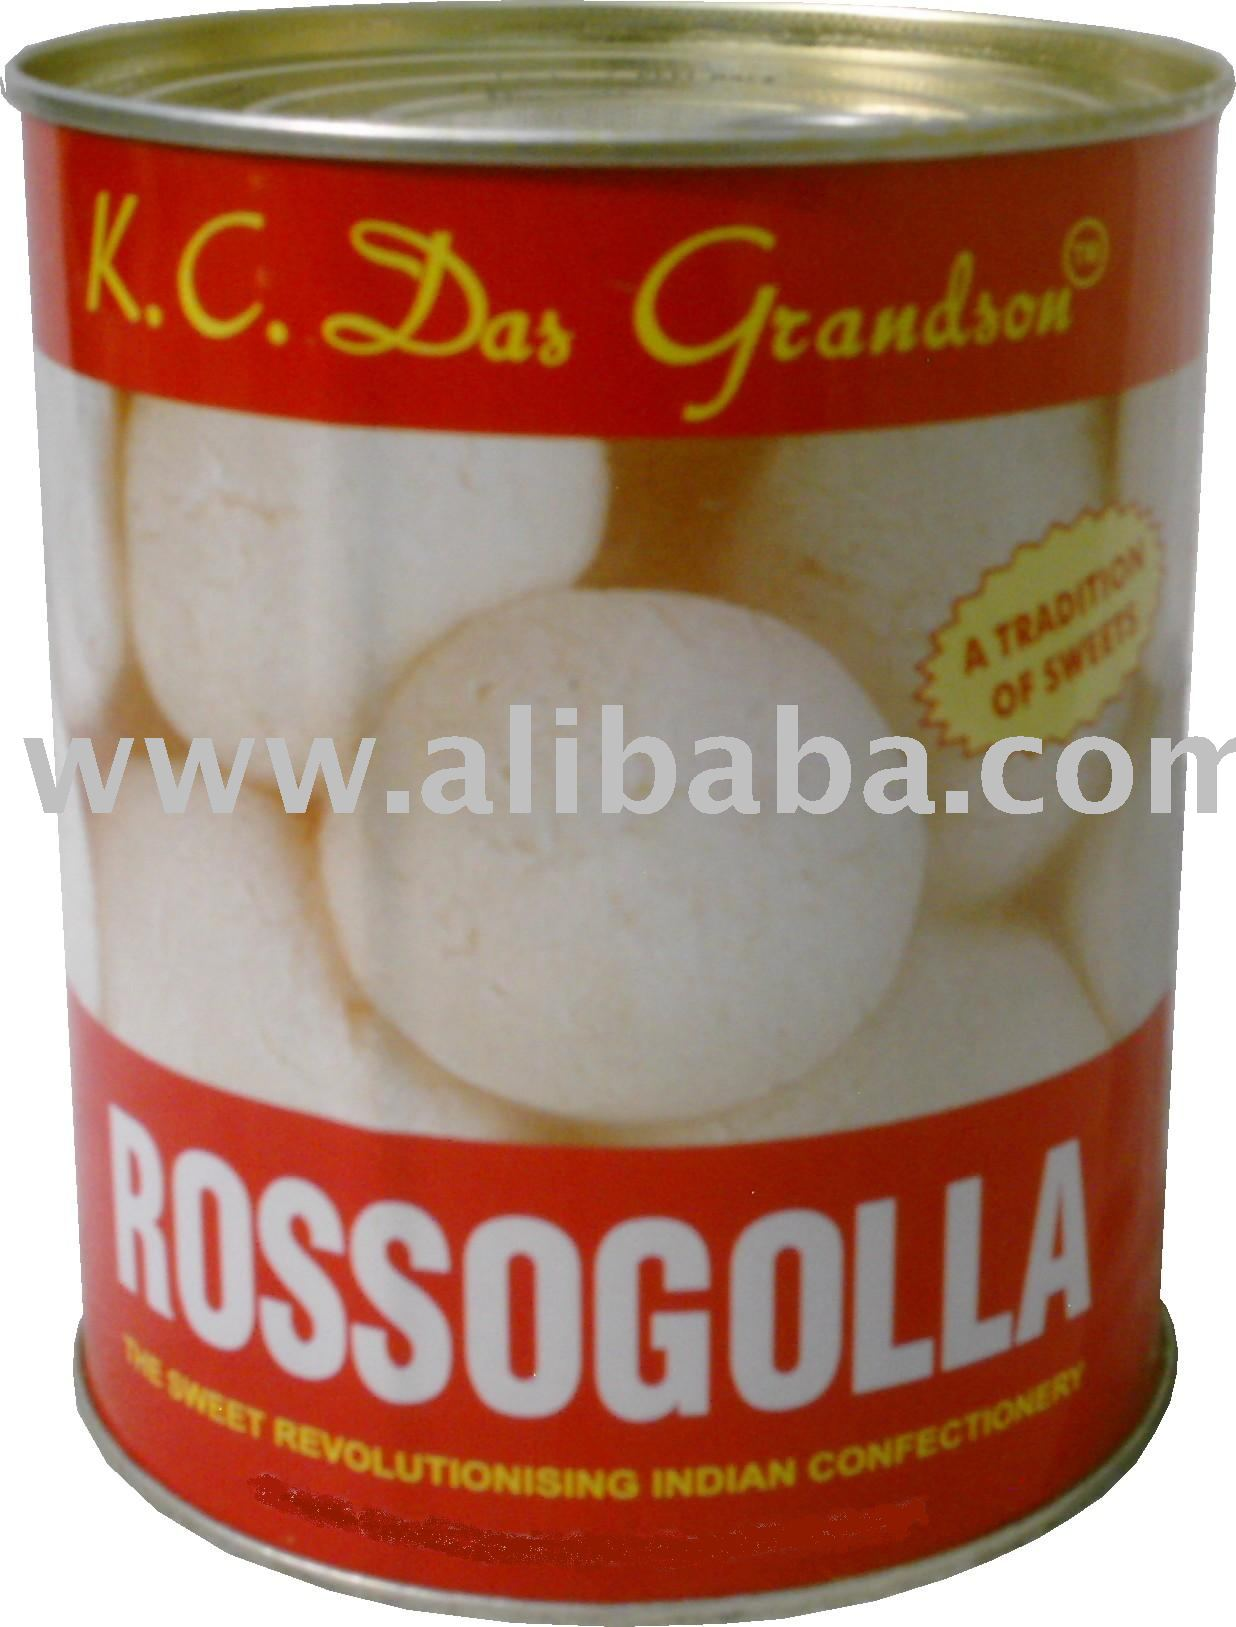 Canned Rossogolla or Rasgulla food